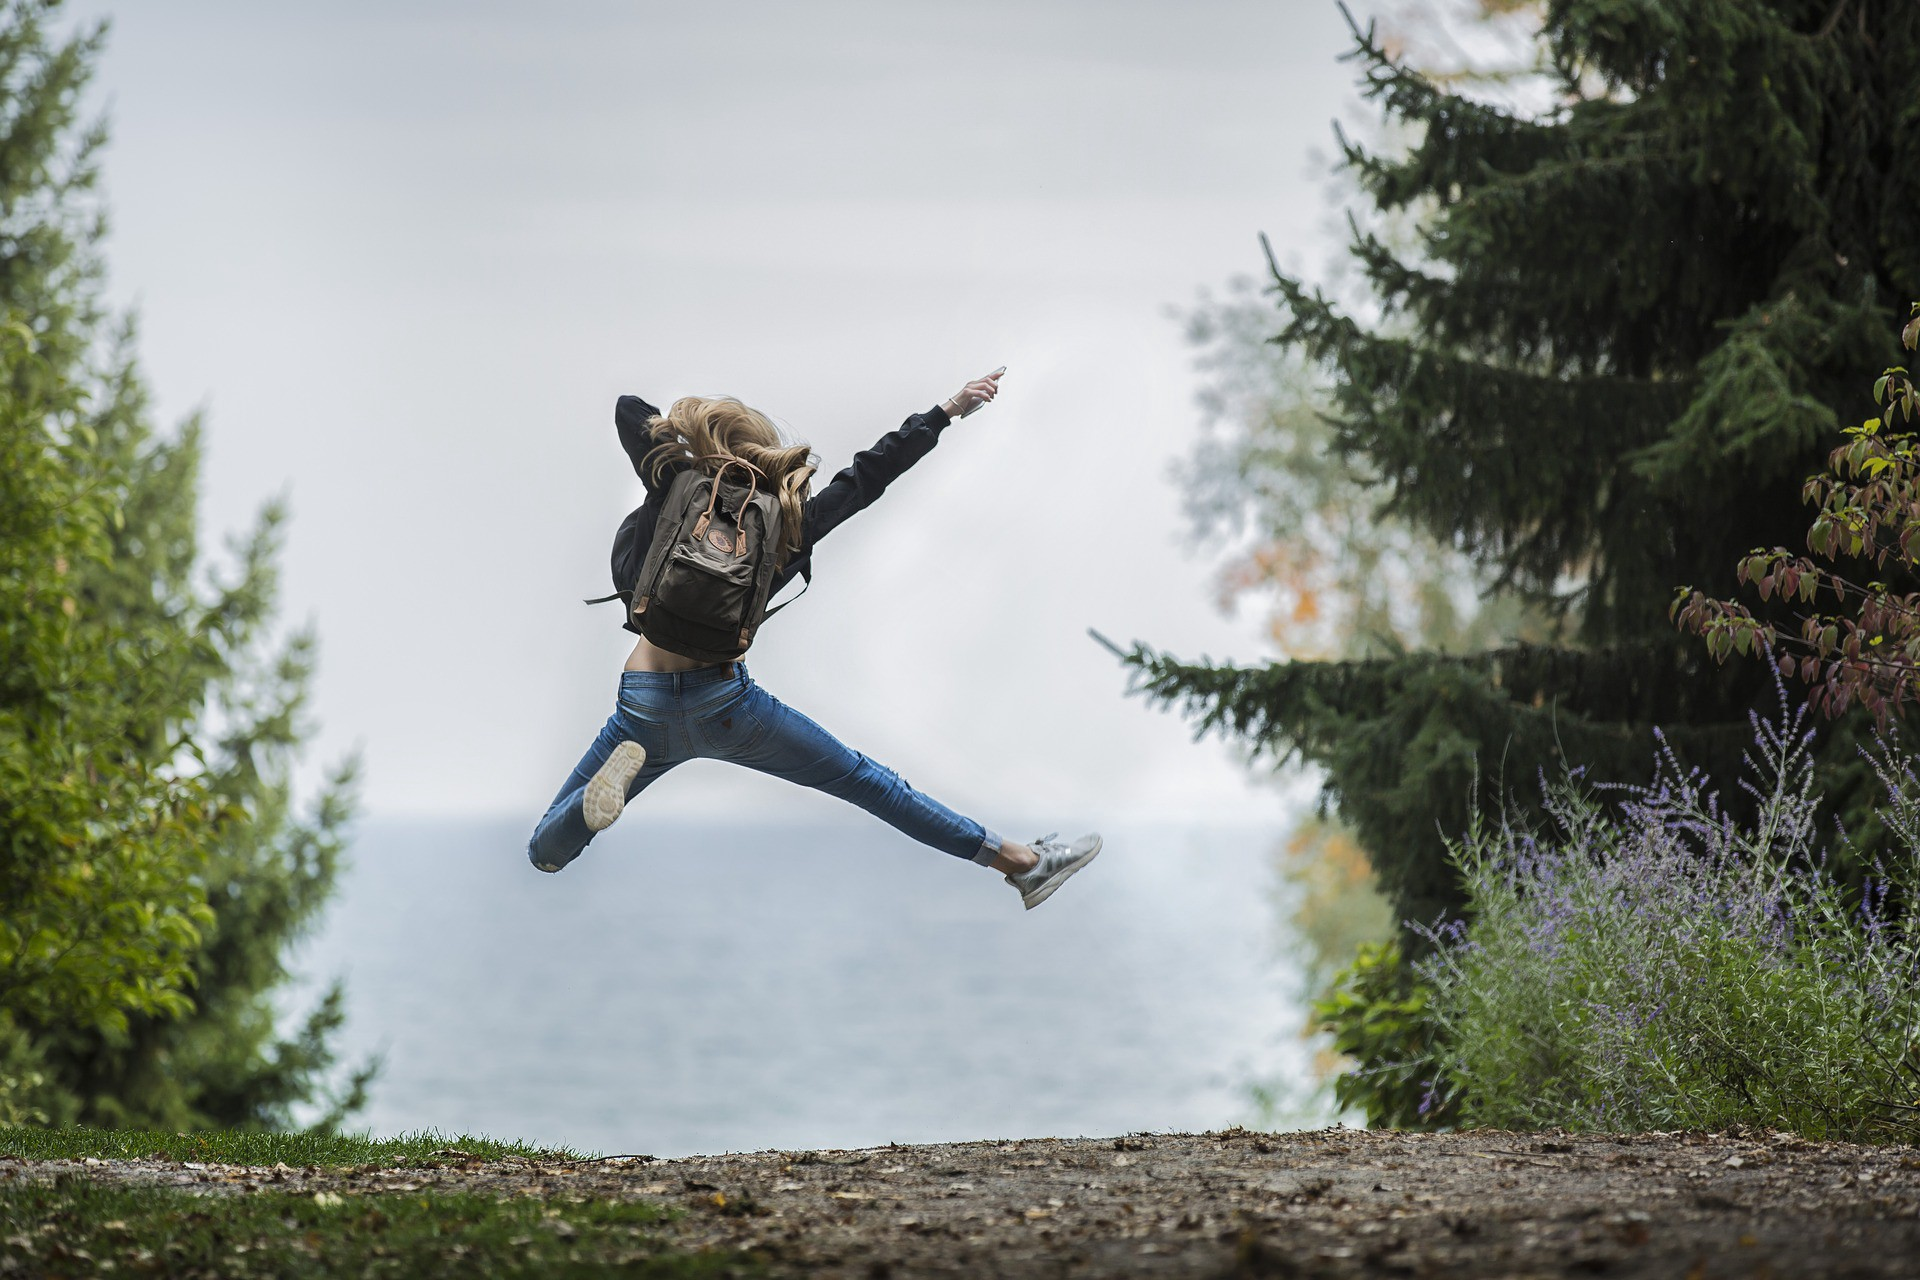 A young girl leaping with joy with her arms wide up in the air